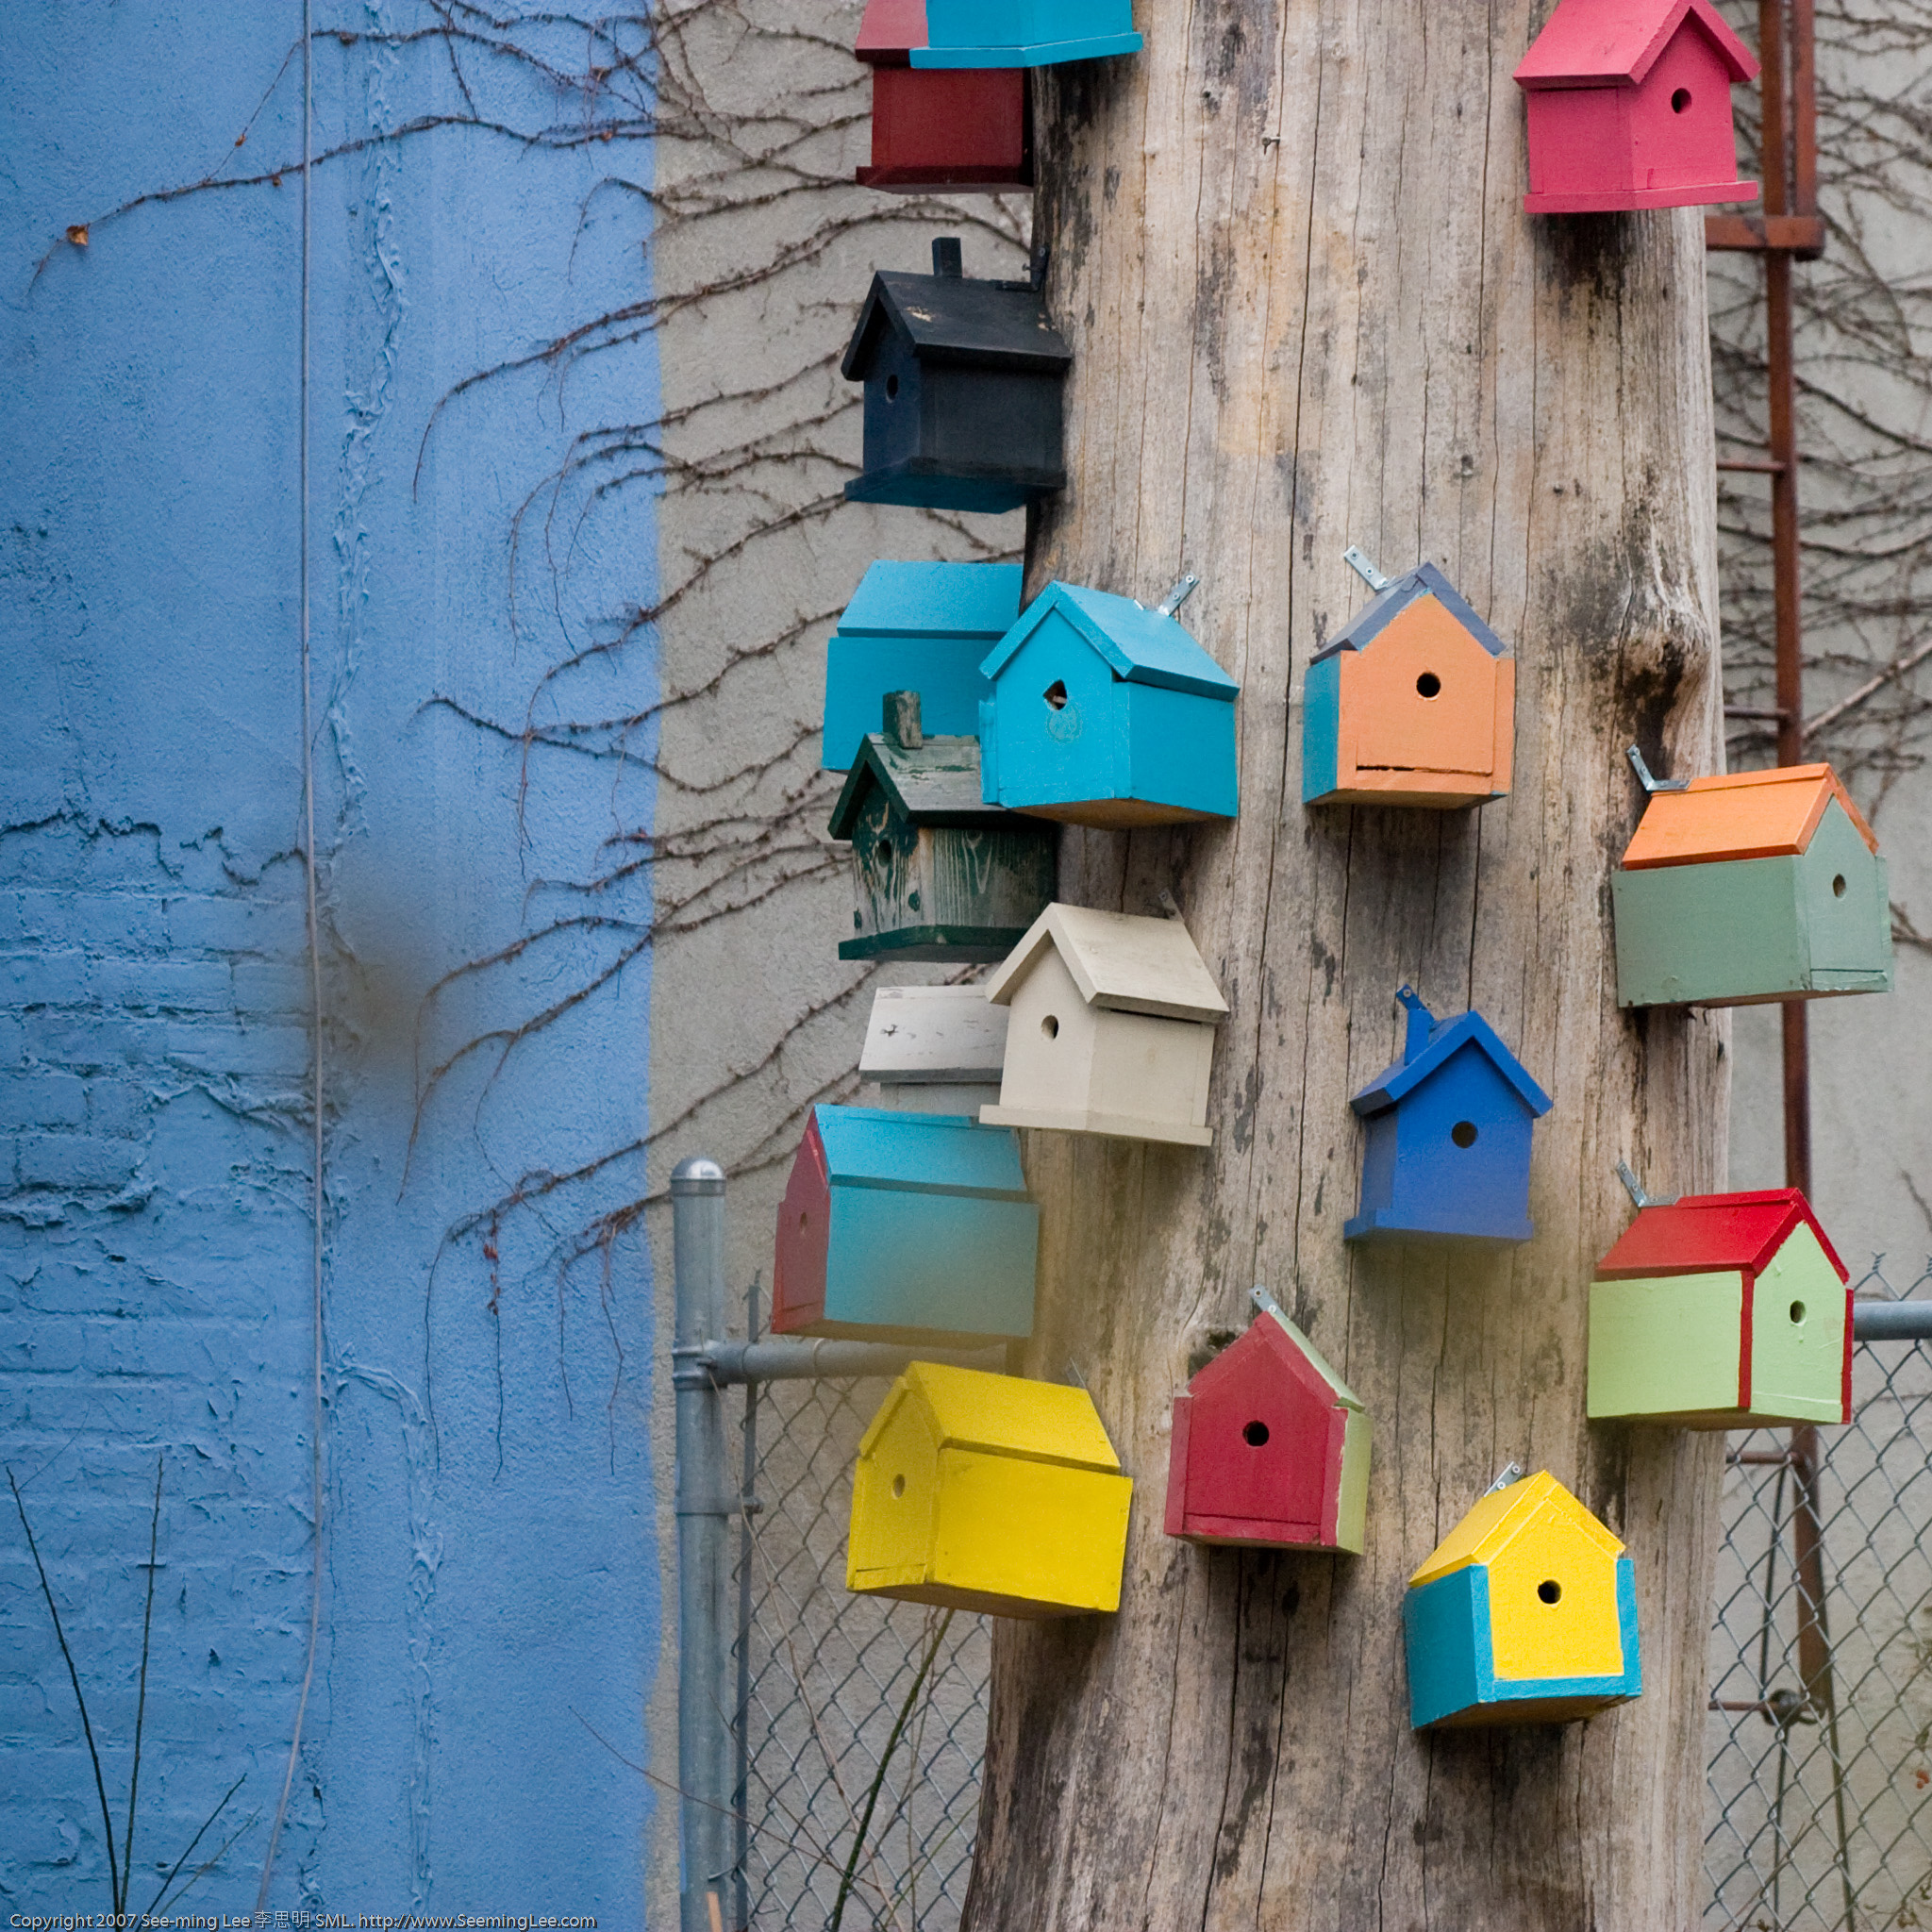 Birdhouses from Wikimedia Commons